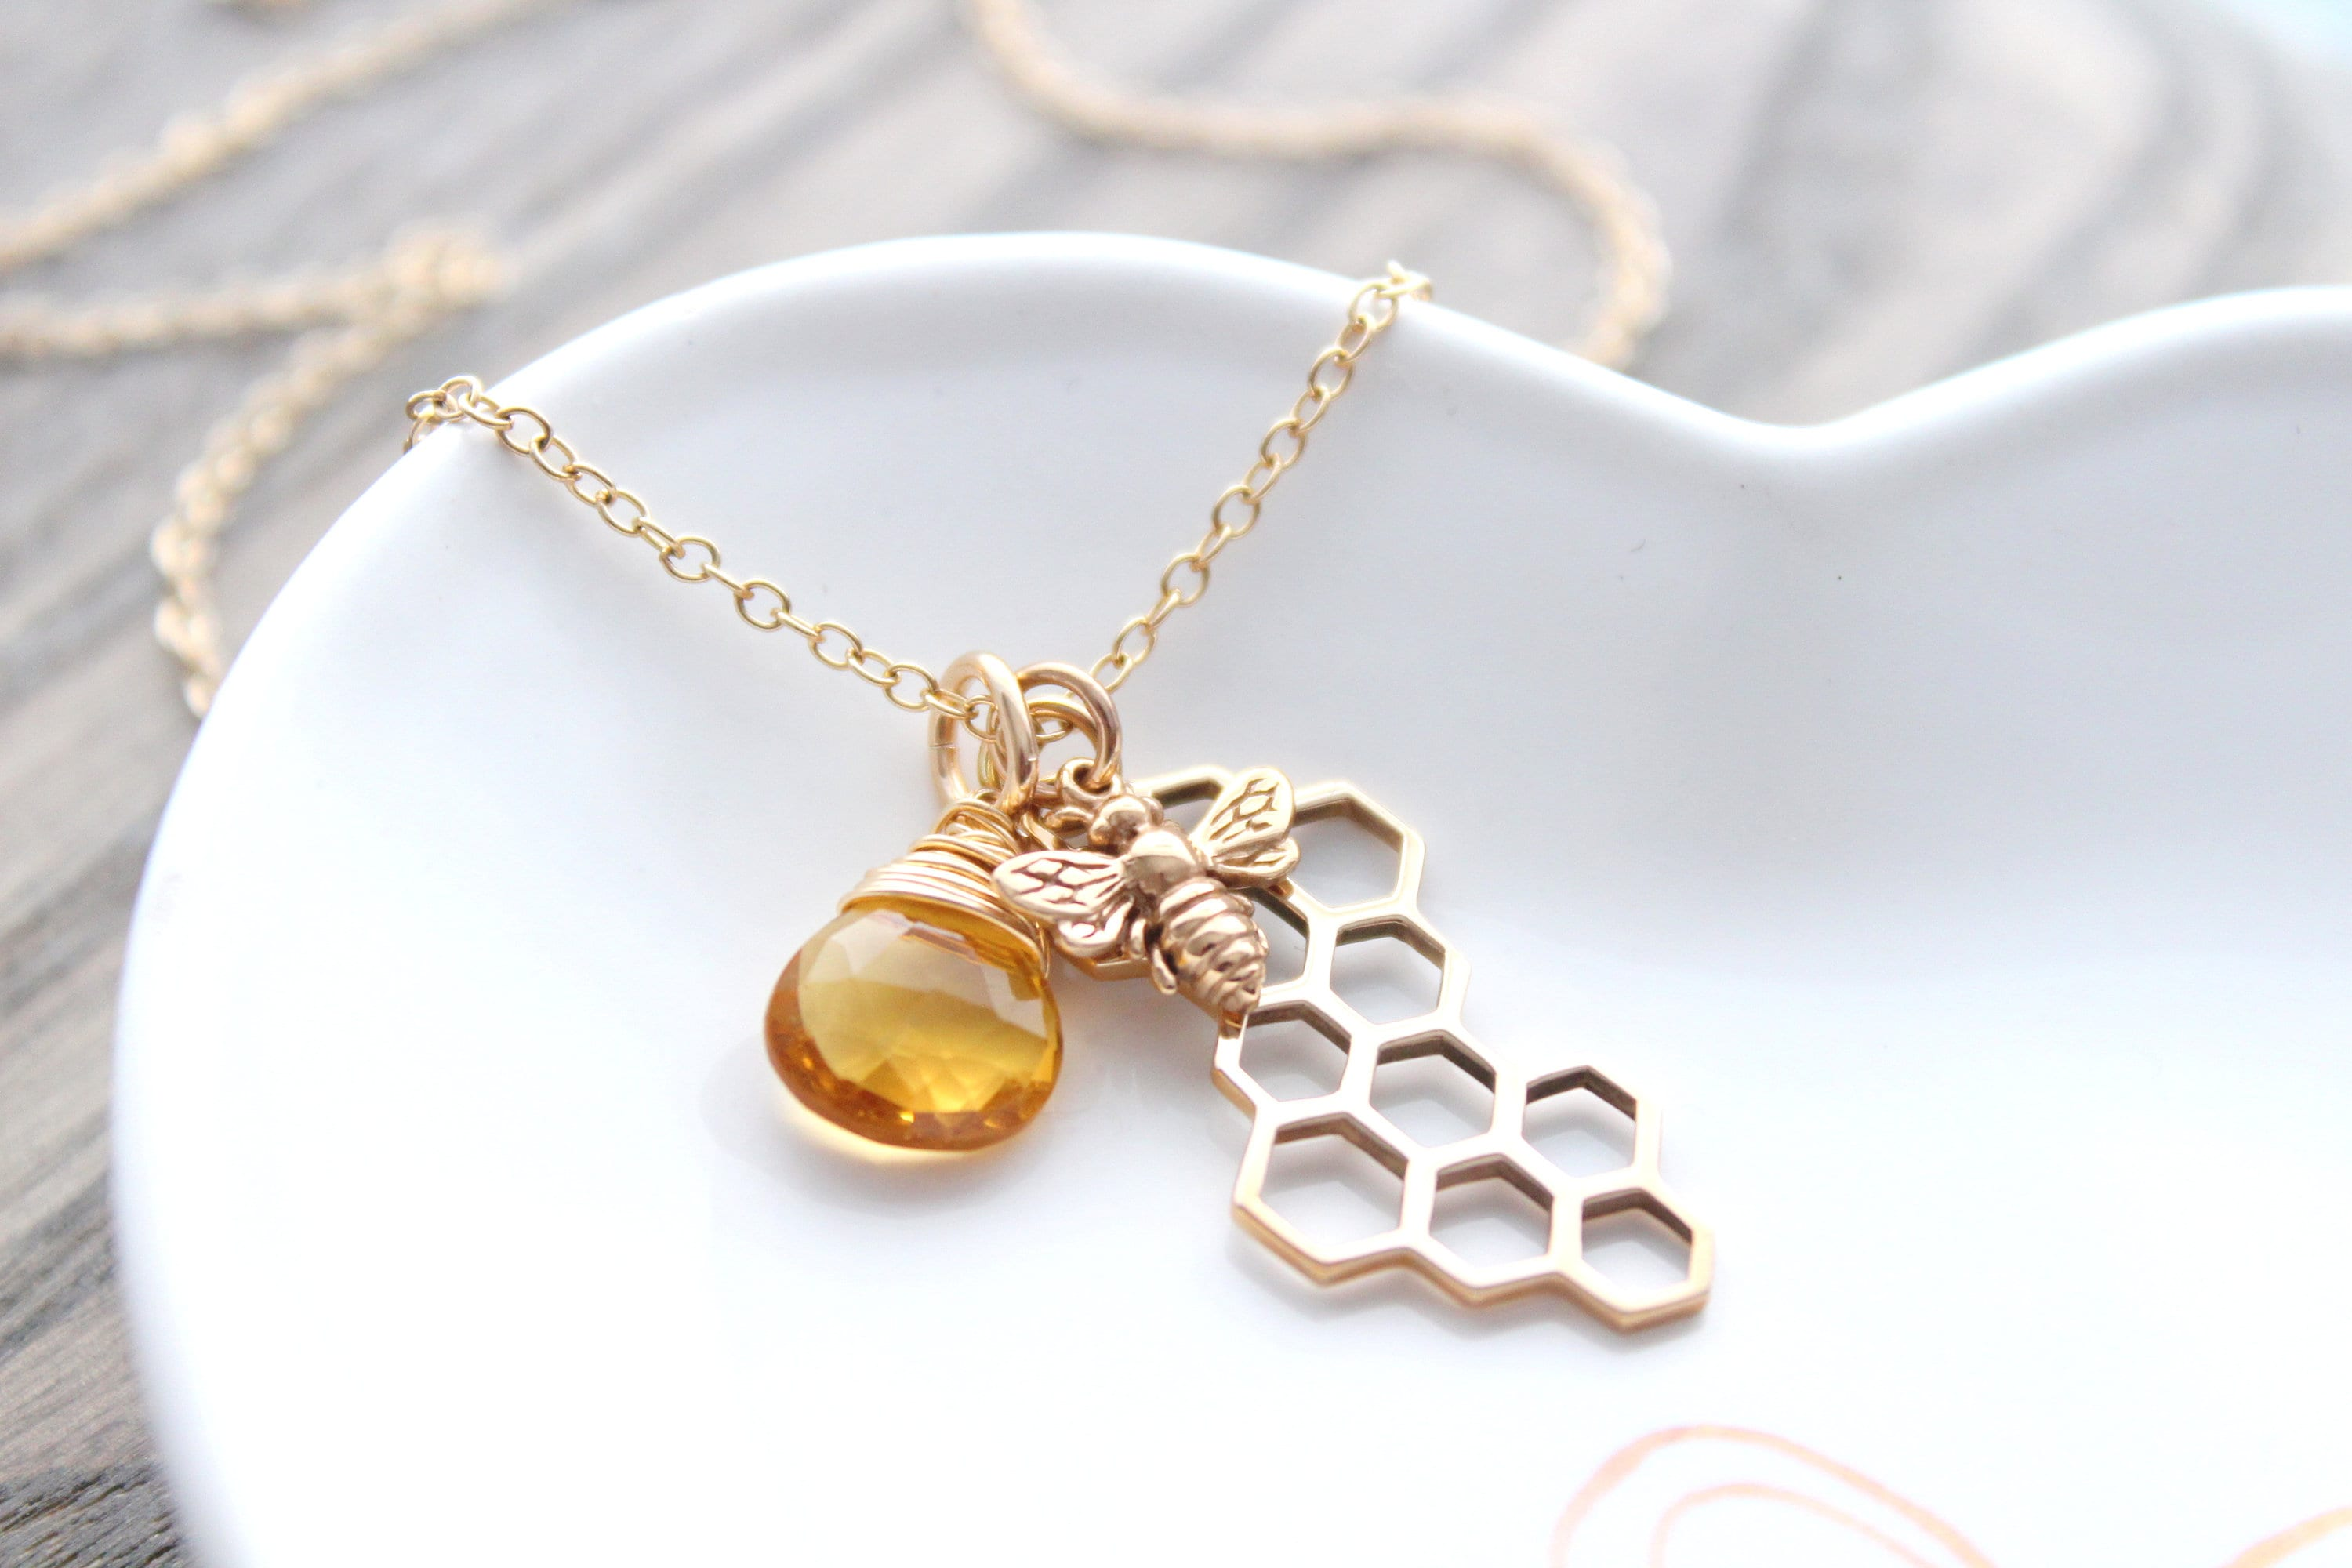 Gold Filled Bee Charm Necklace Curb Chain Necklace Dainty Necklace Special Gift For Her